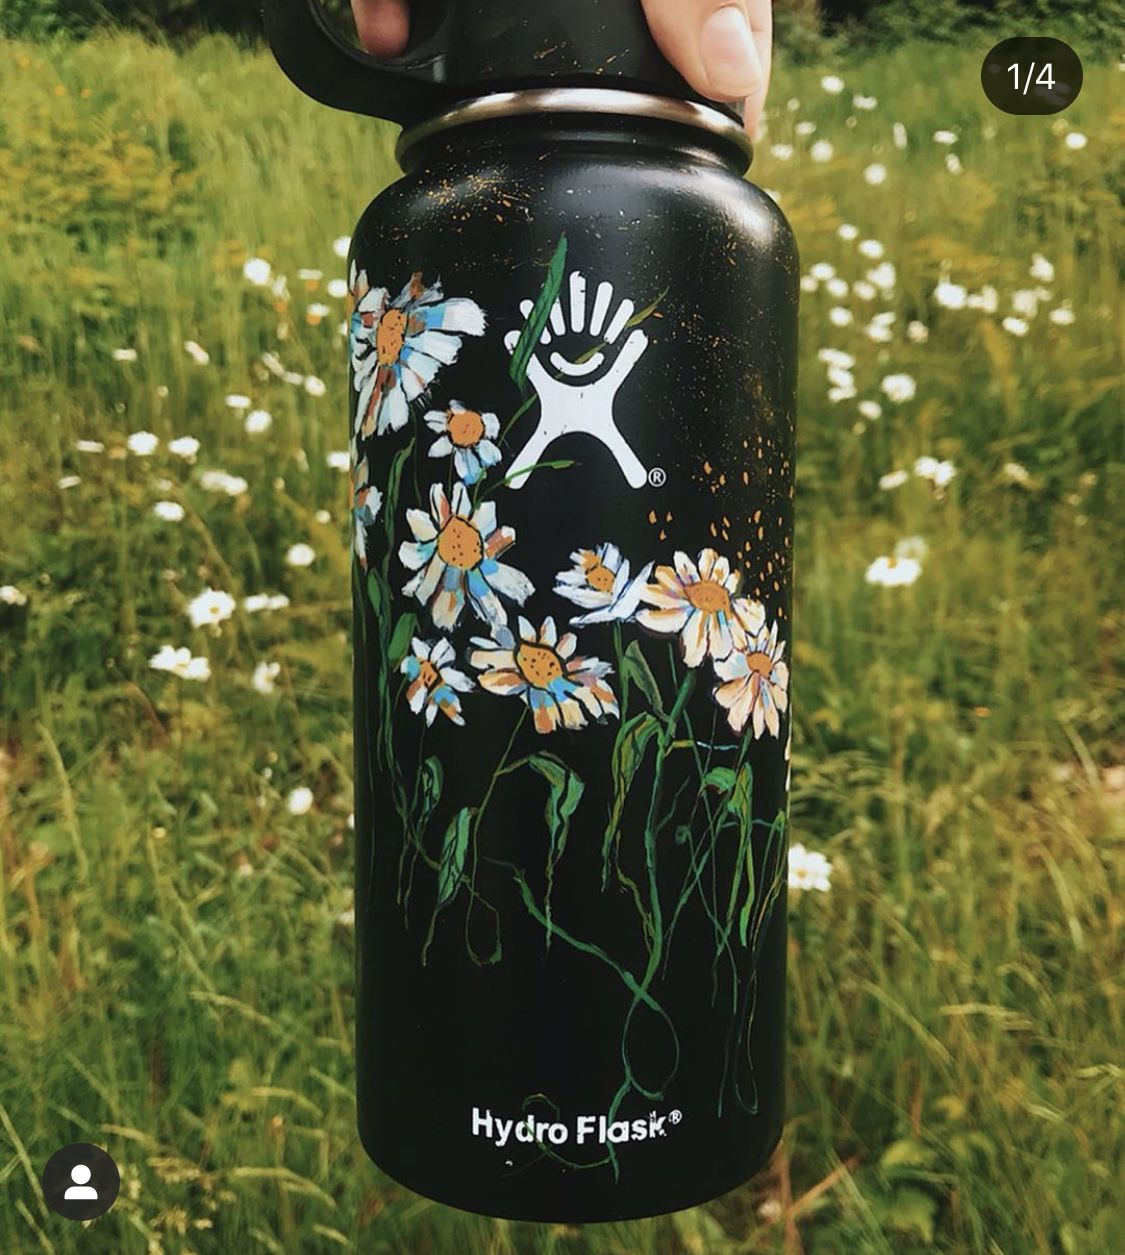 Aesthetic Painting On Hydroflask Water Bottle With Acrylic Colors